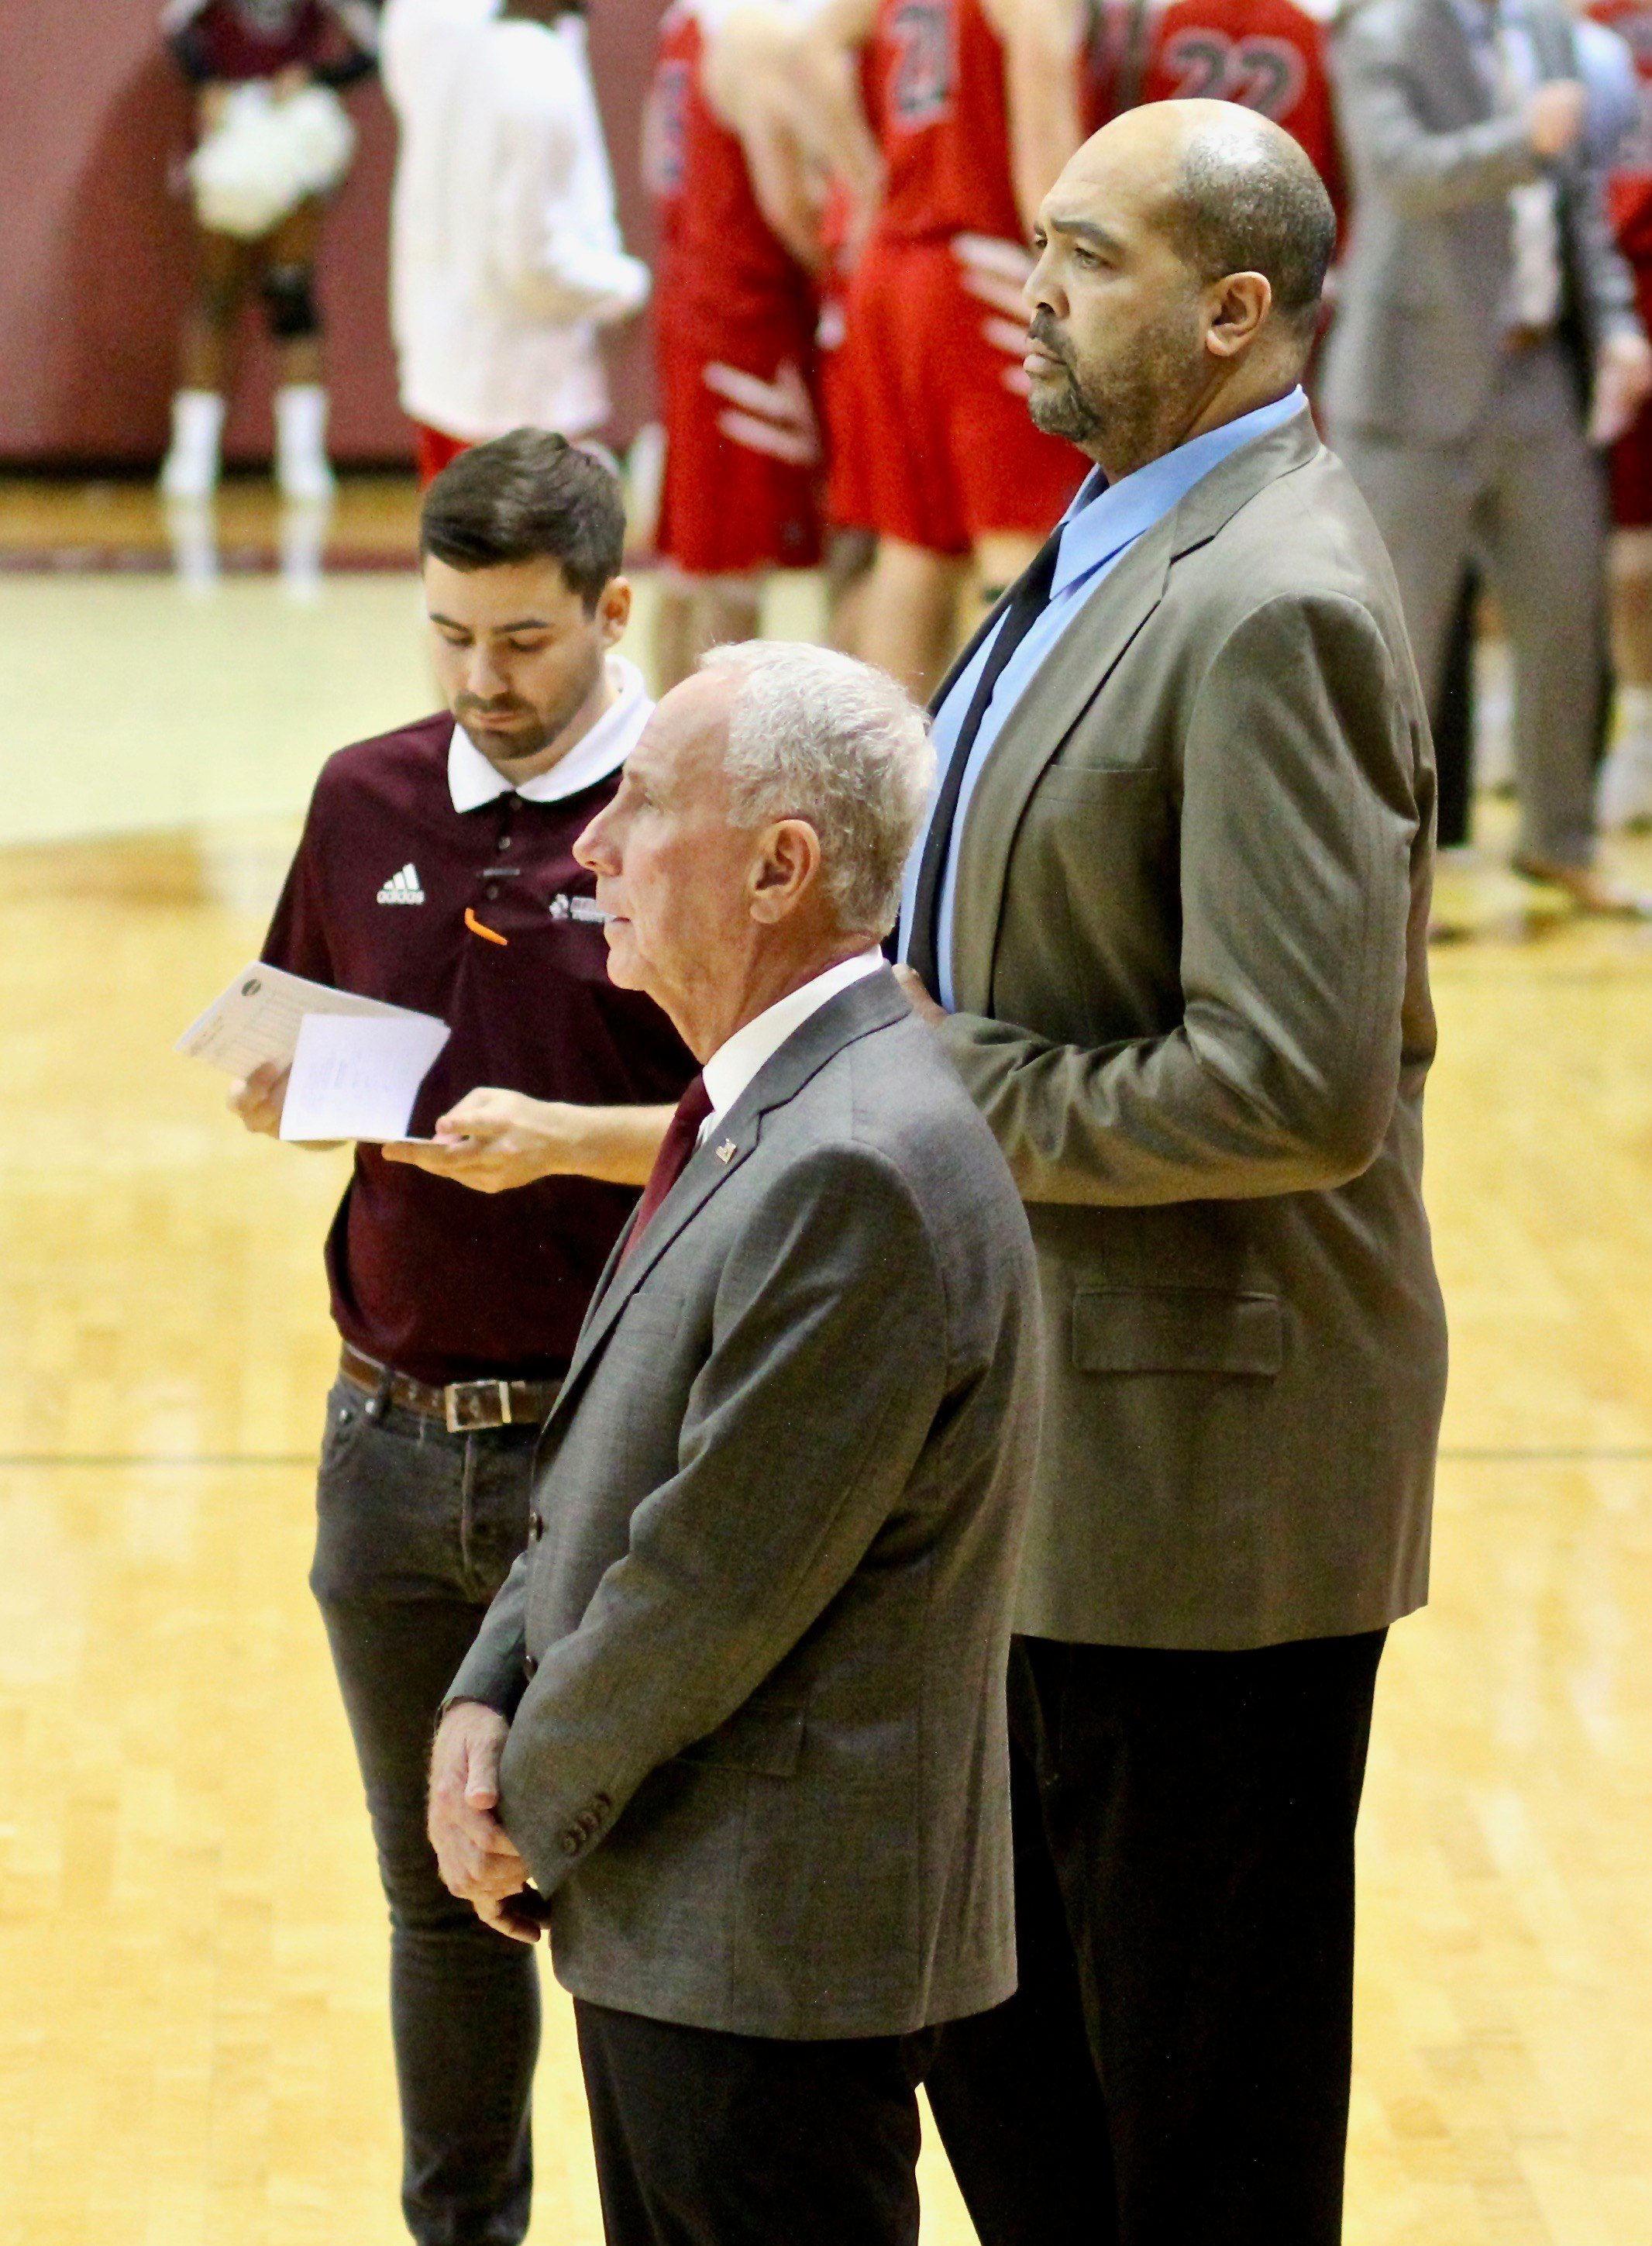 Former Louisville and NbA center Felton Spencer watches Bellarmine warmups with head coach Scott Davenport (WDRB photo by Eric Crawford)